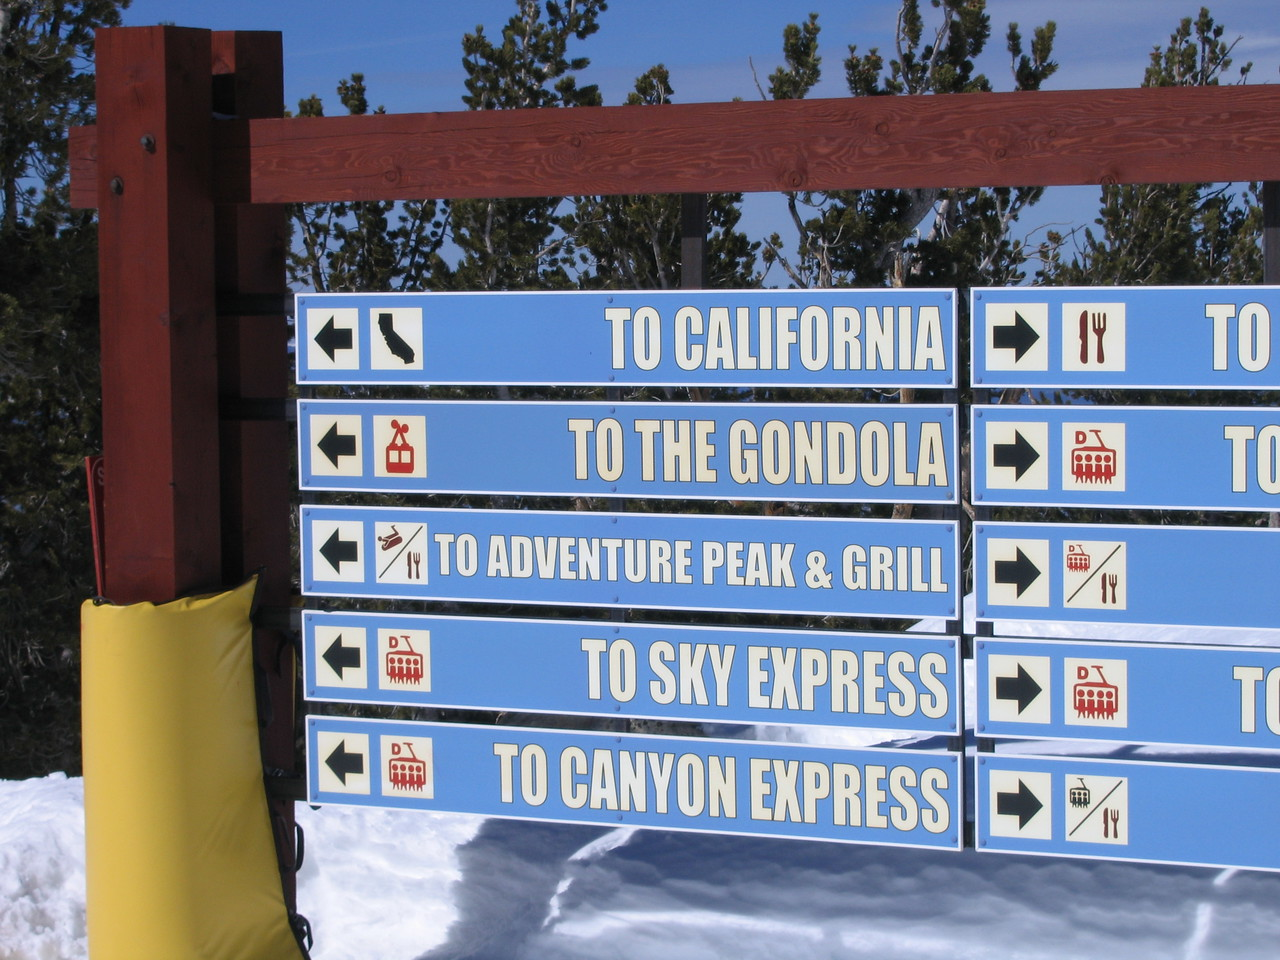 Yup, you could ski right into California. It's the best way into the state.